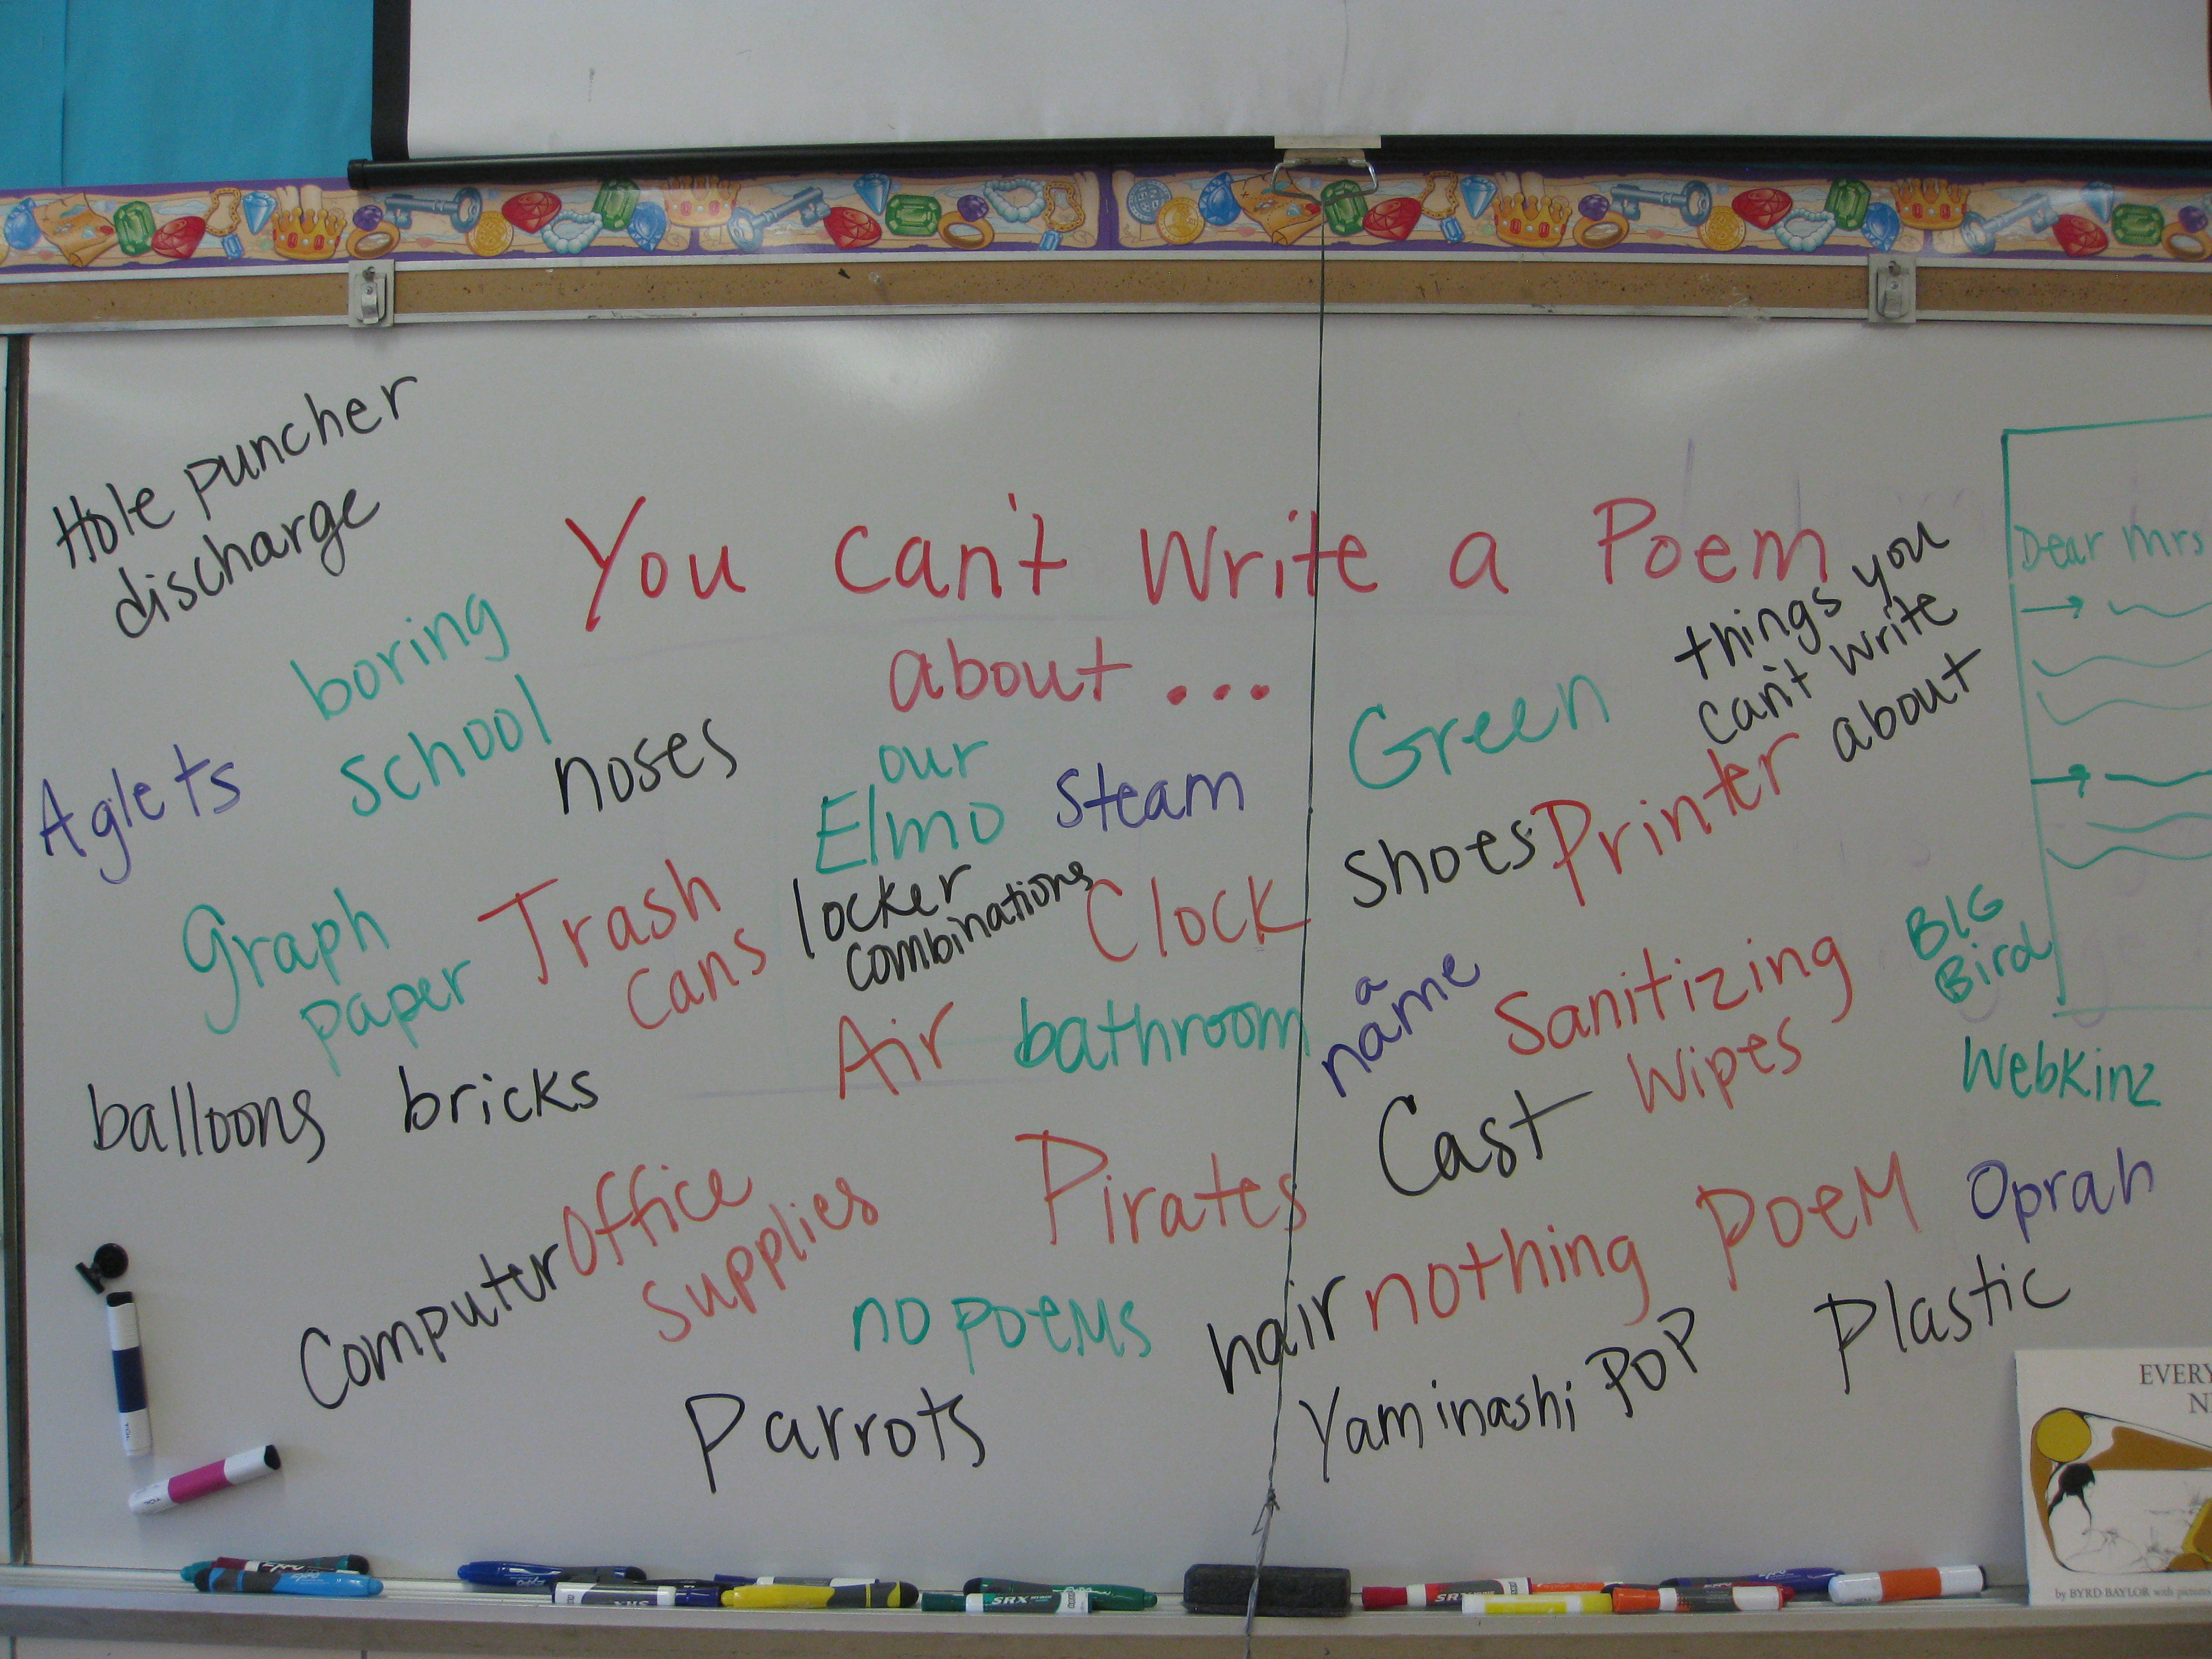 10 Perfect Good Poem Ideas To Write About writing poetry ideas read write talk 2021